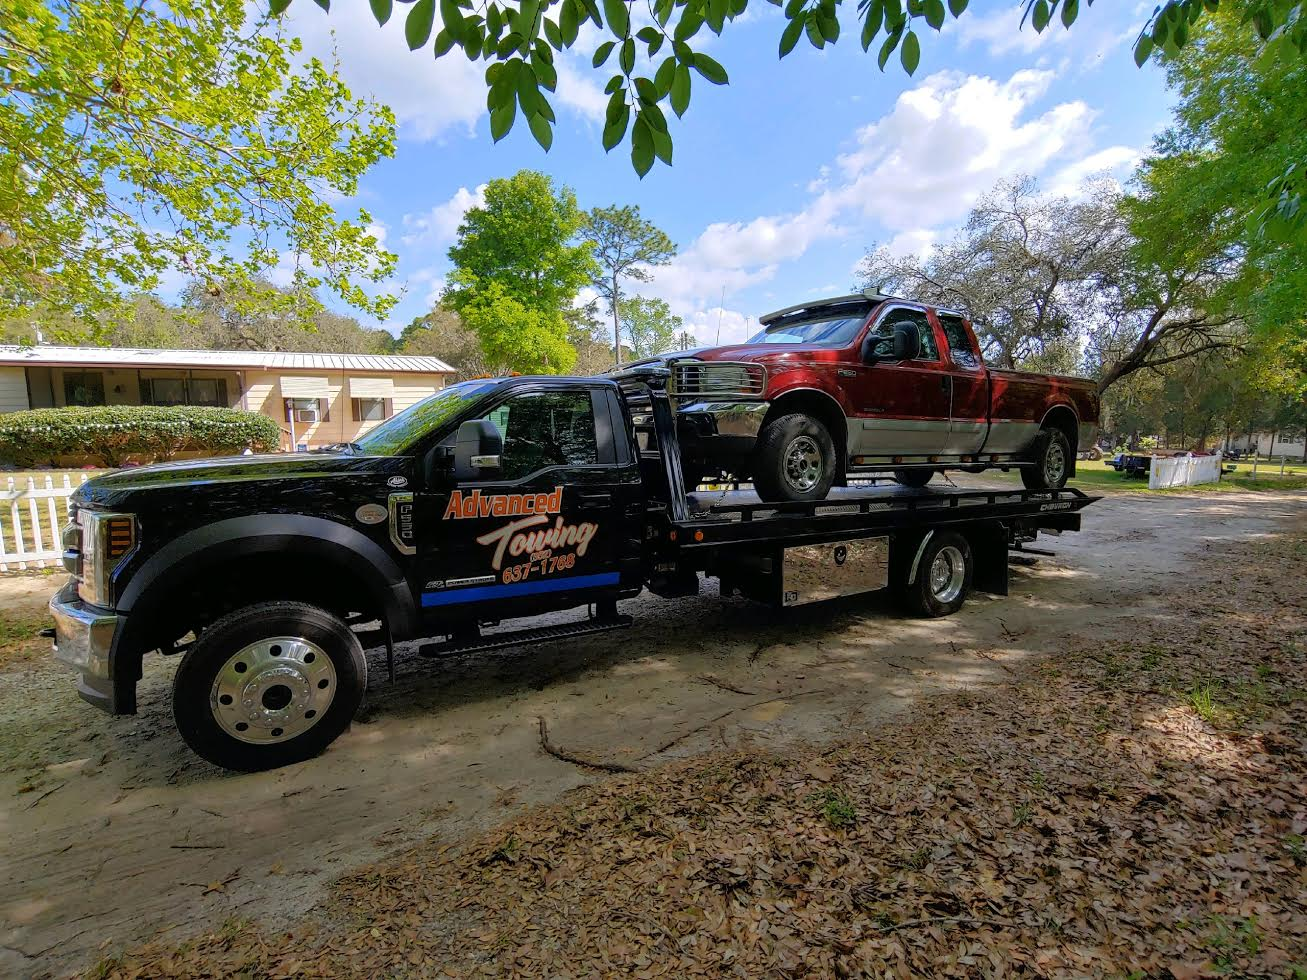 Advanced Towing image 32